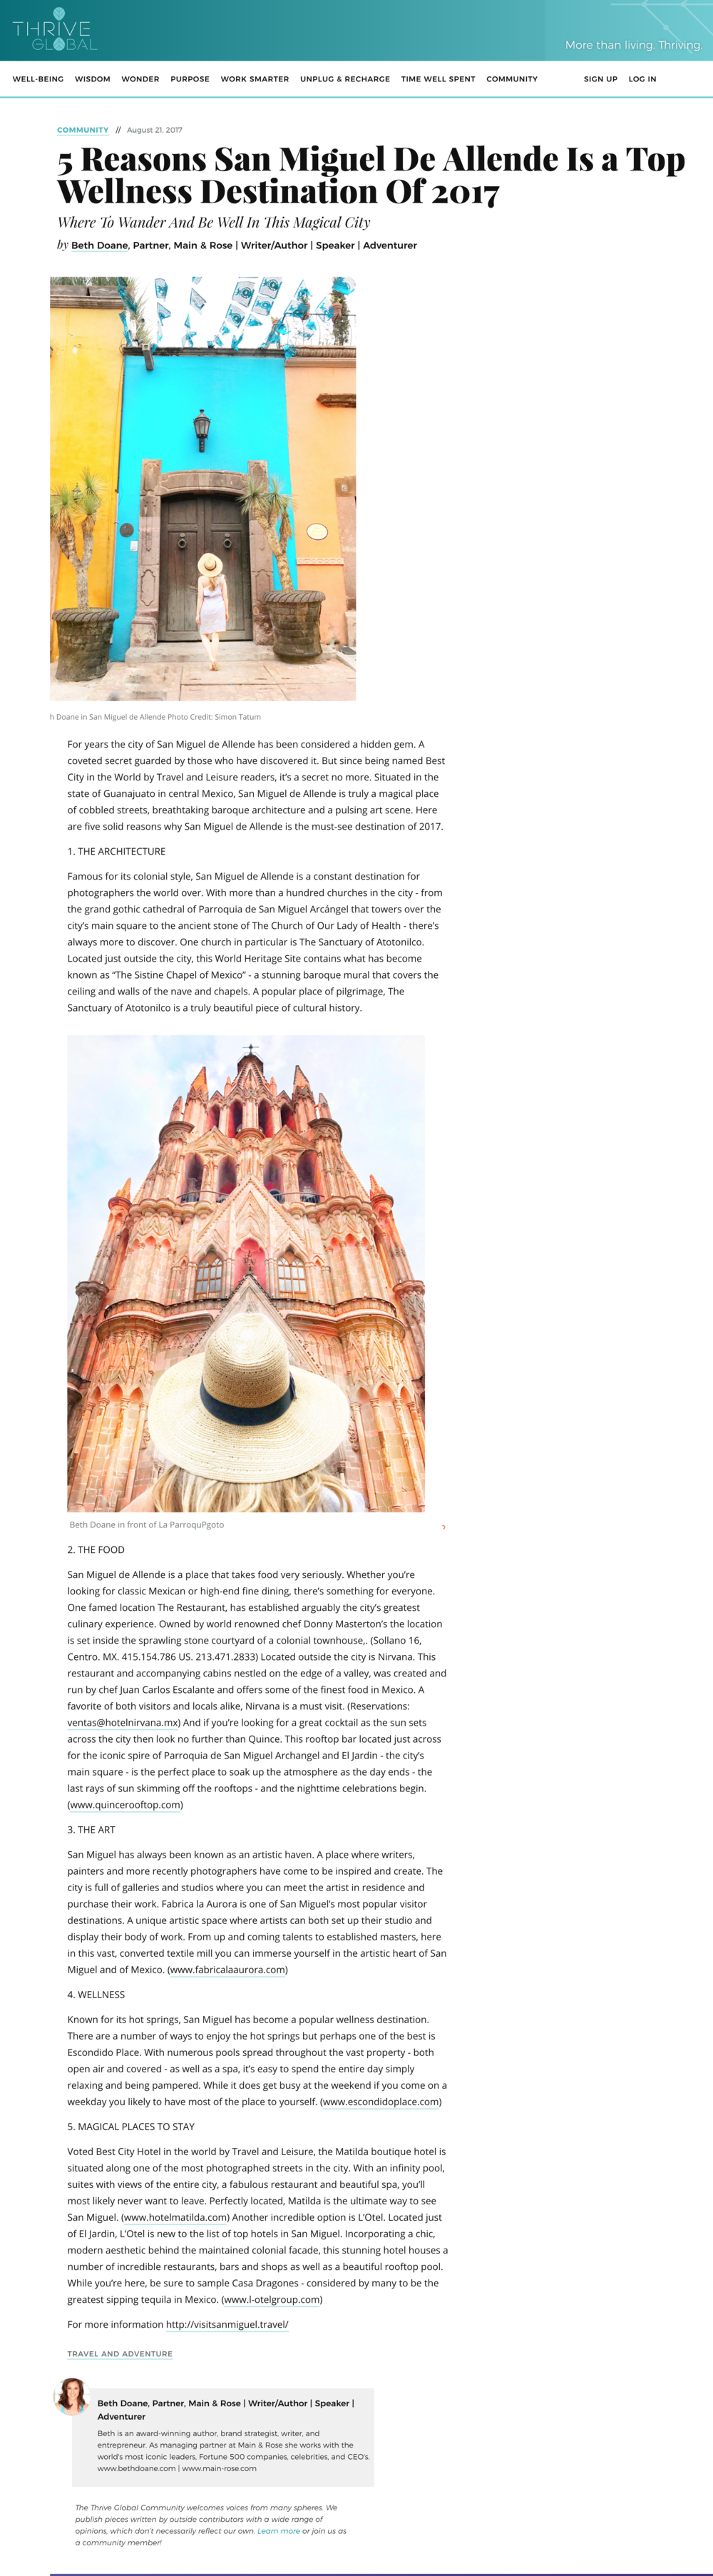 screencapture-thriveglobal-stories-11709-5-reasons-san-miguel-de-allende-is-a-top-wellness-destination-of-2017-1503369441593.png